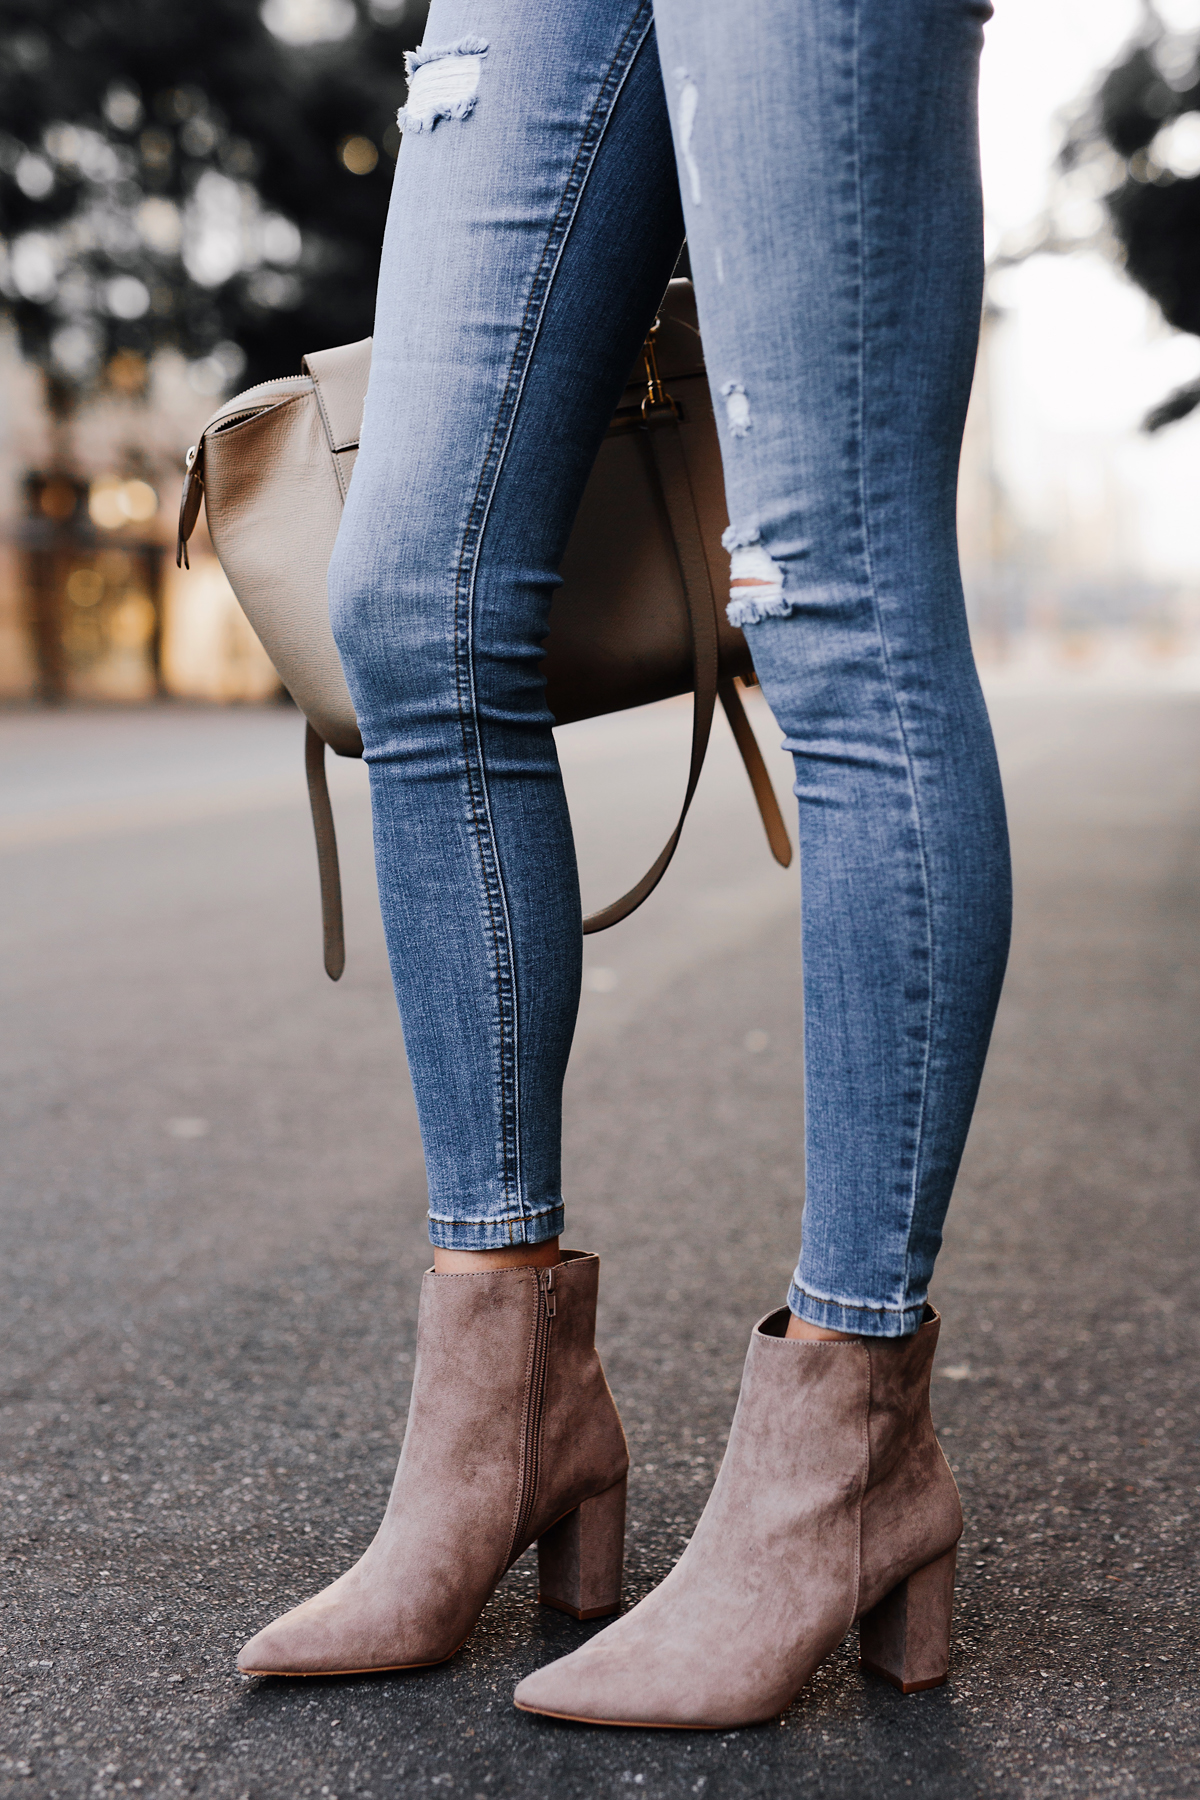 Woman Wearing Walmart Denim Ripped Skinny Jeans Steve Madden Taupe Booties Outfit Fashion Jackson San Diego Fashion Blogger Street Style